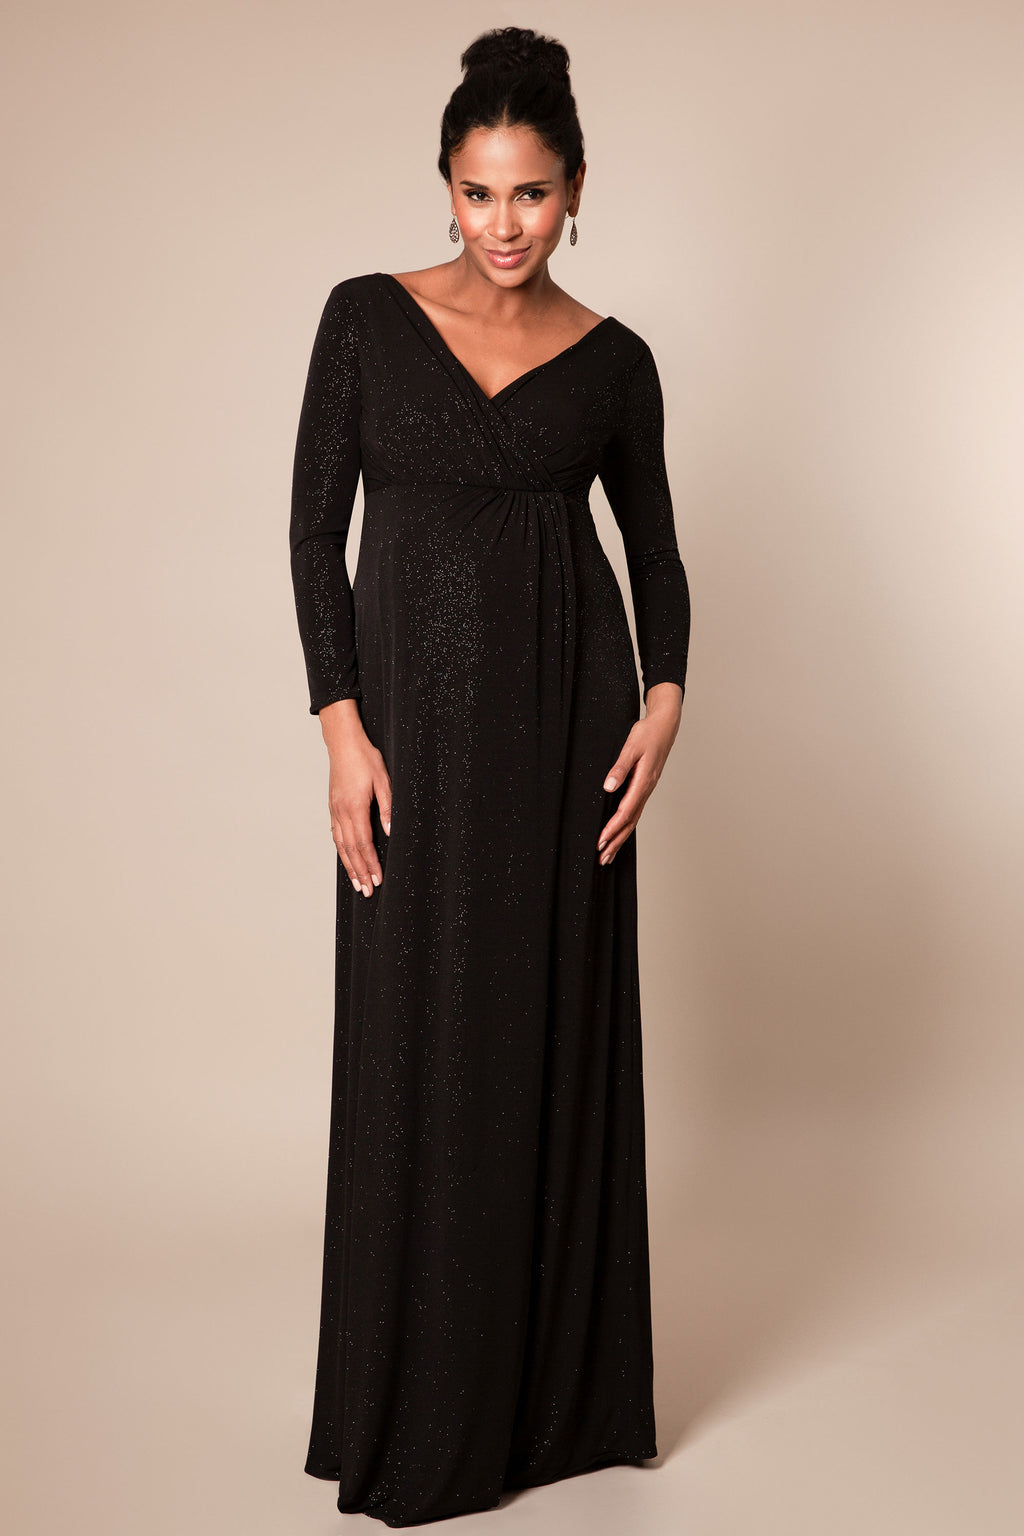 Tiffany Rose Isabella Maternity & Nursing Gown in Caviar - Seven Women Maternity